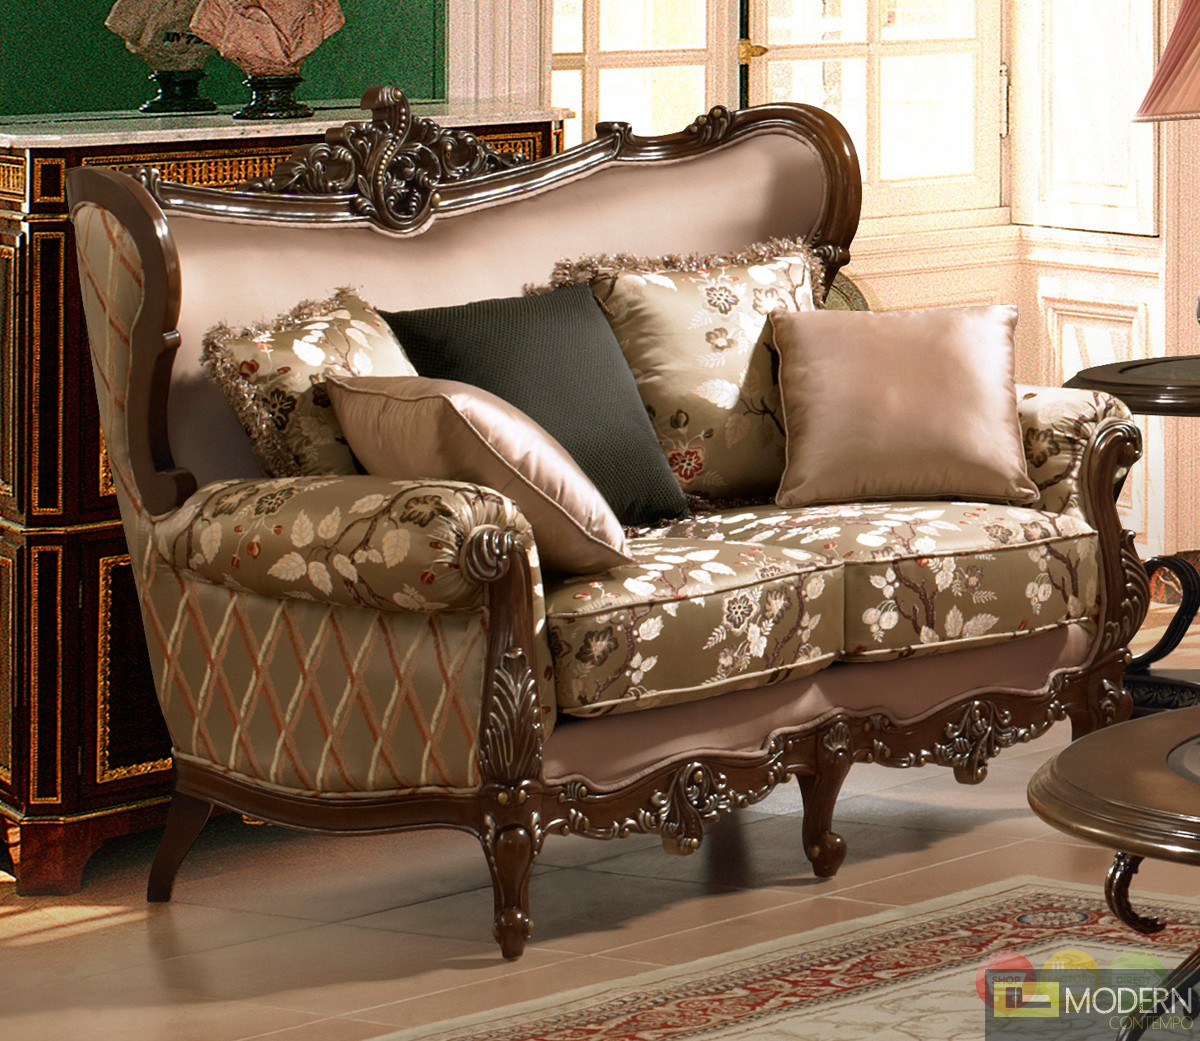 Sofa Sets In Living Room Traditional European Design Formal Living Room Sofa Set W Carved Wood Accents Mchd 15